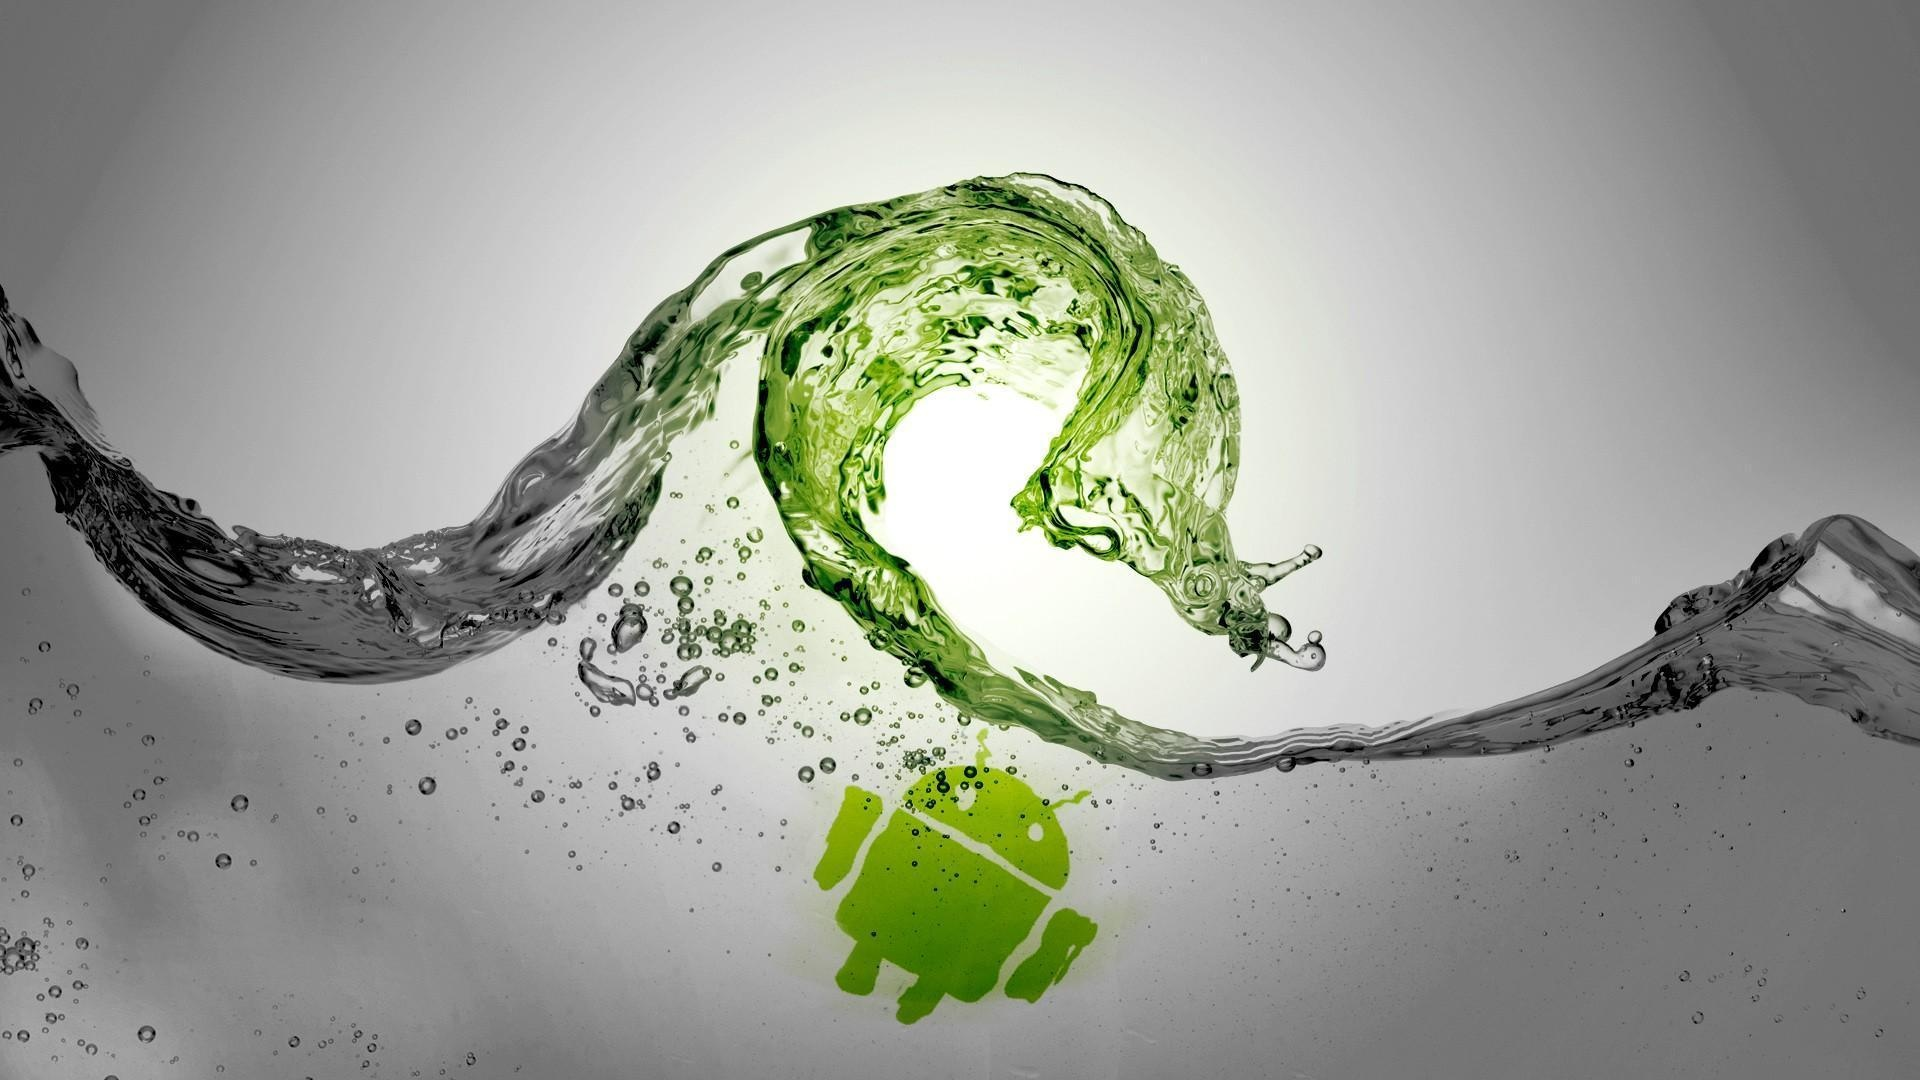 Android Wallpaper Widescreen